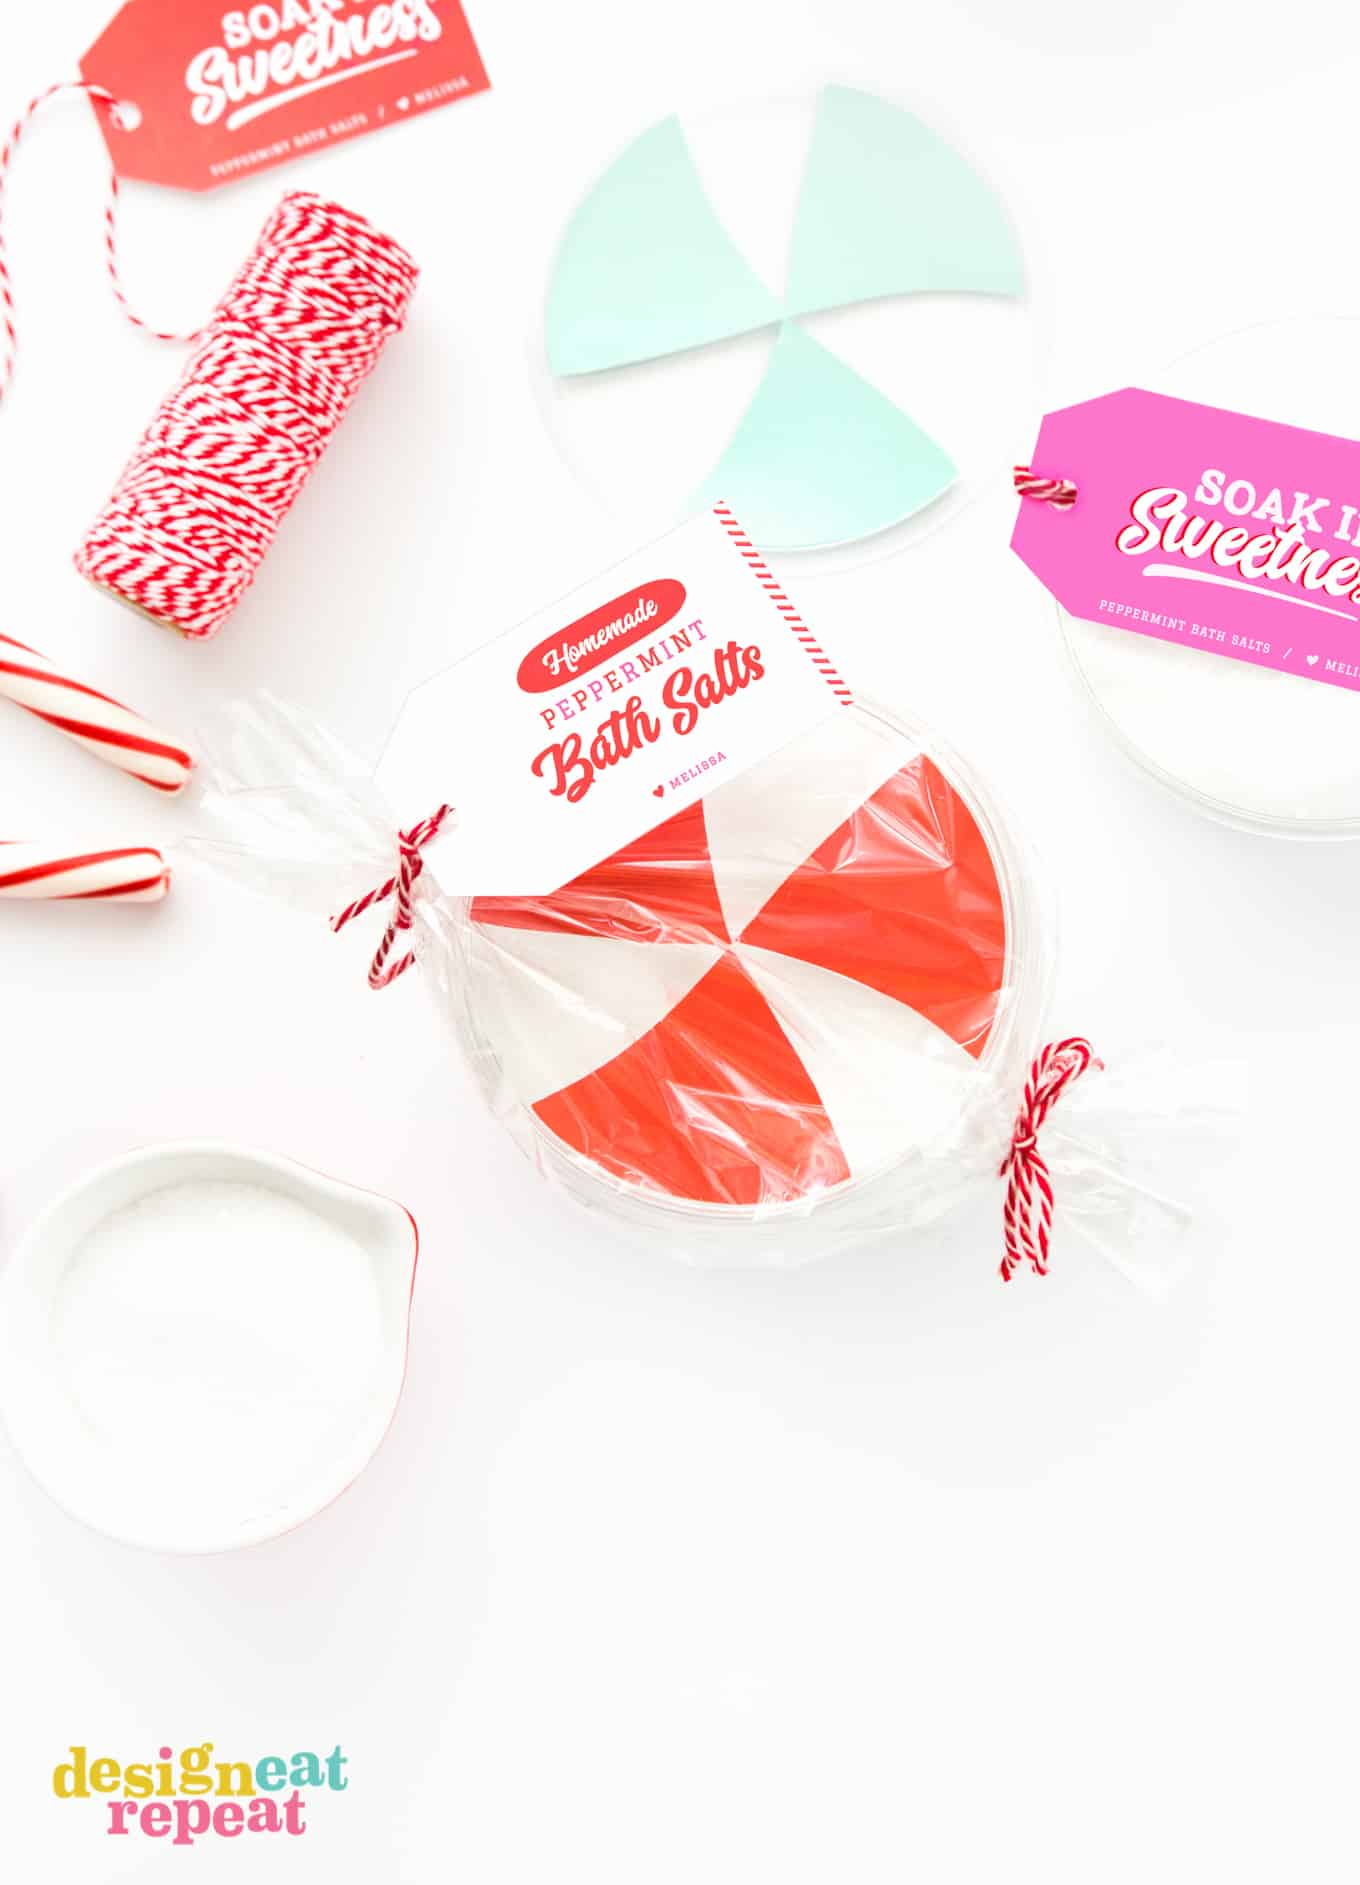 Container of peppermint DIY bath salt with printable gift tag.